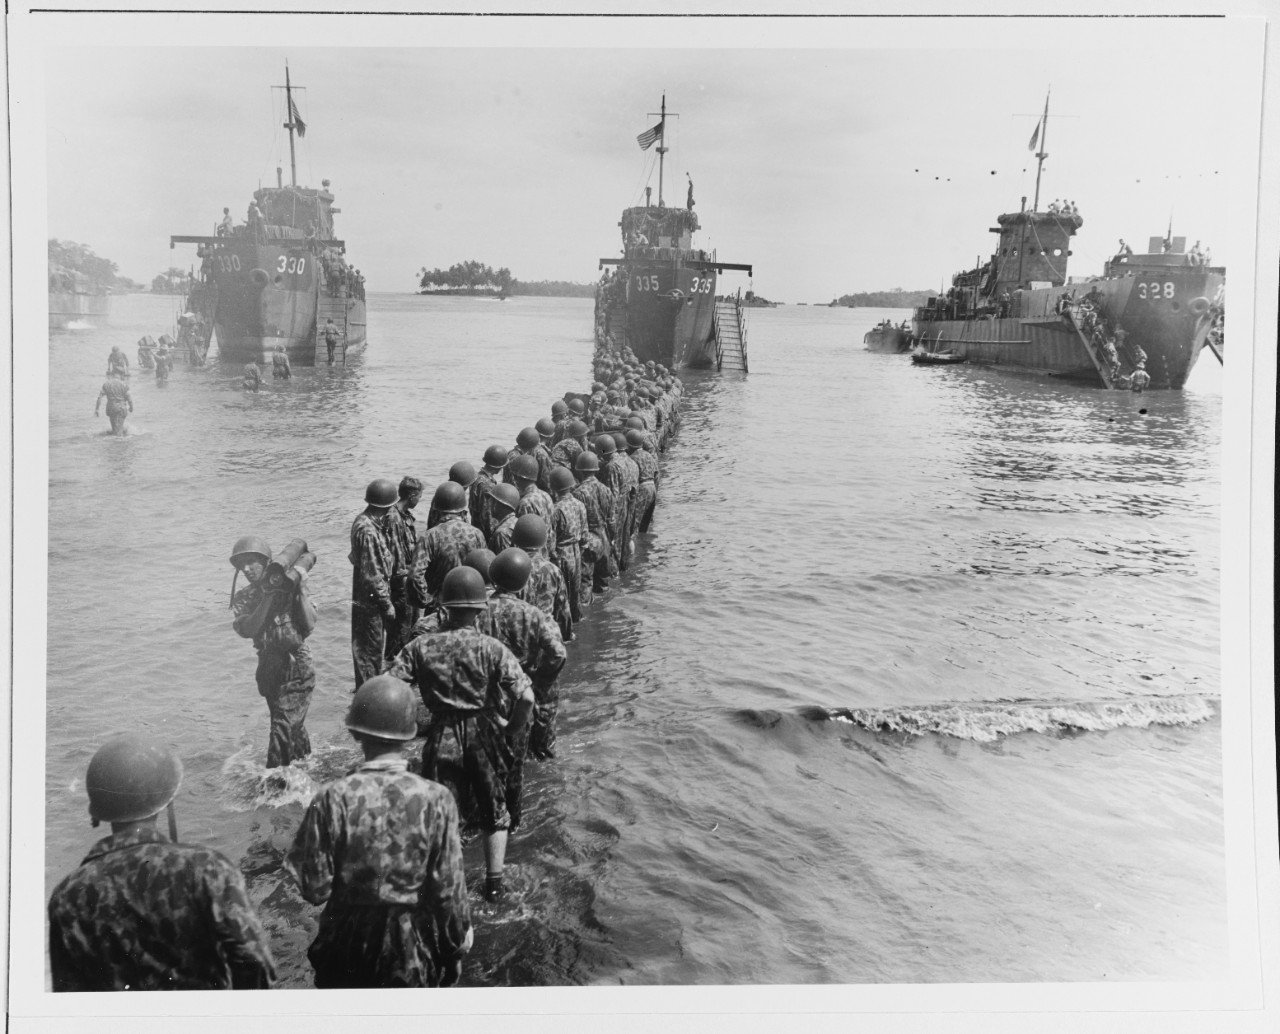 Troops unloading ammunition from LCI-330, 335, and 328 during landing operations at Rendova Island, 30 June 1943.